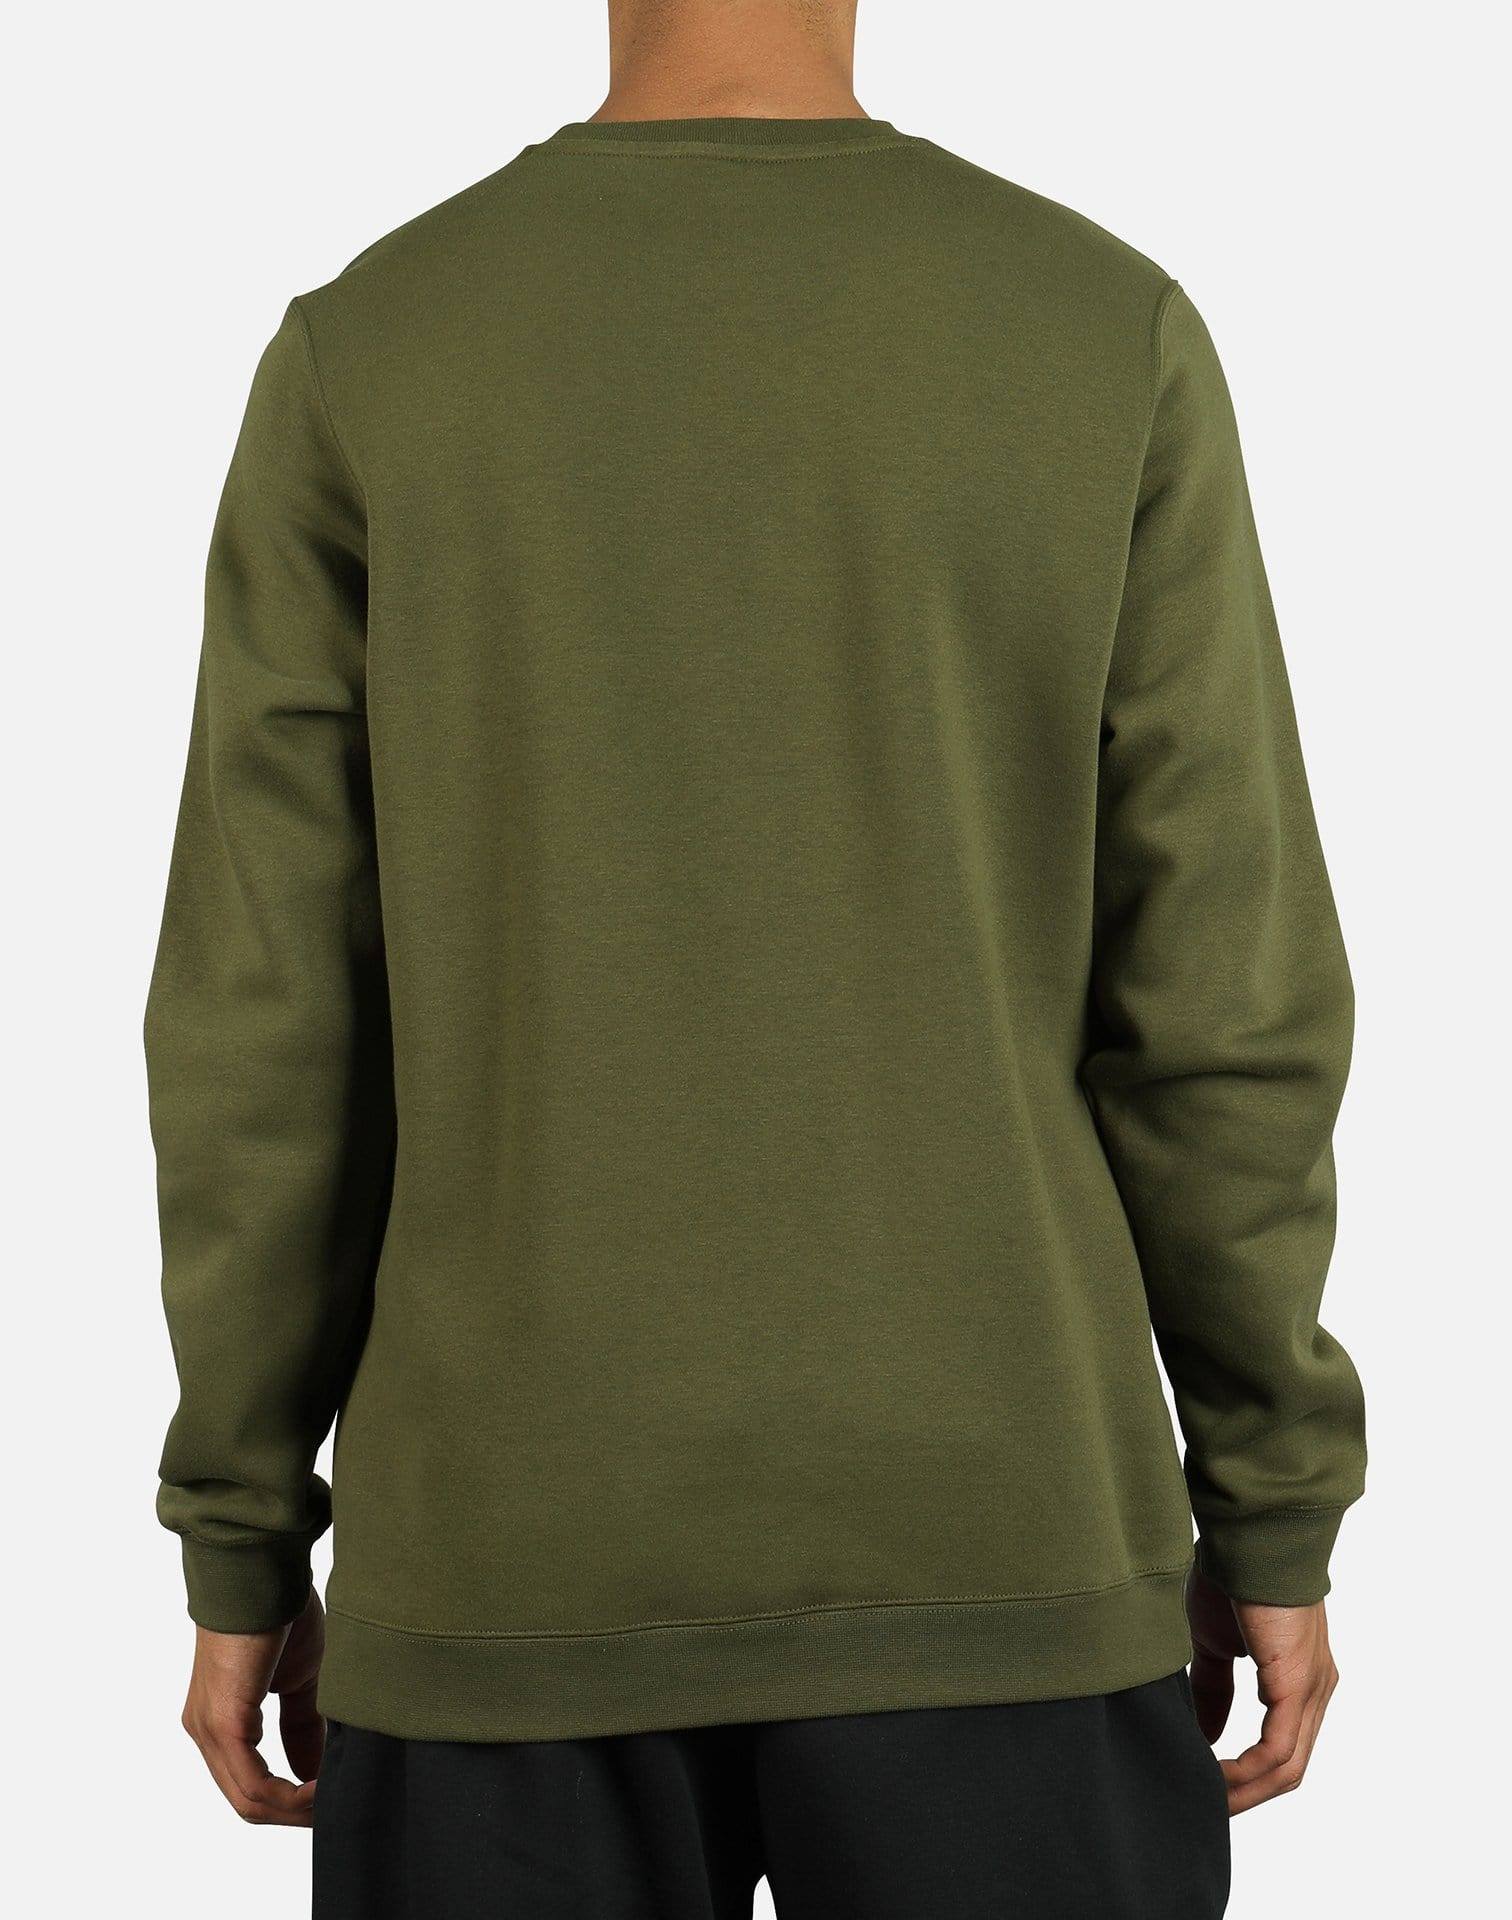 Nike Men's Club Fleece Crew Sweatshirt